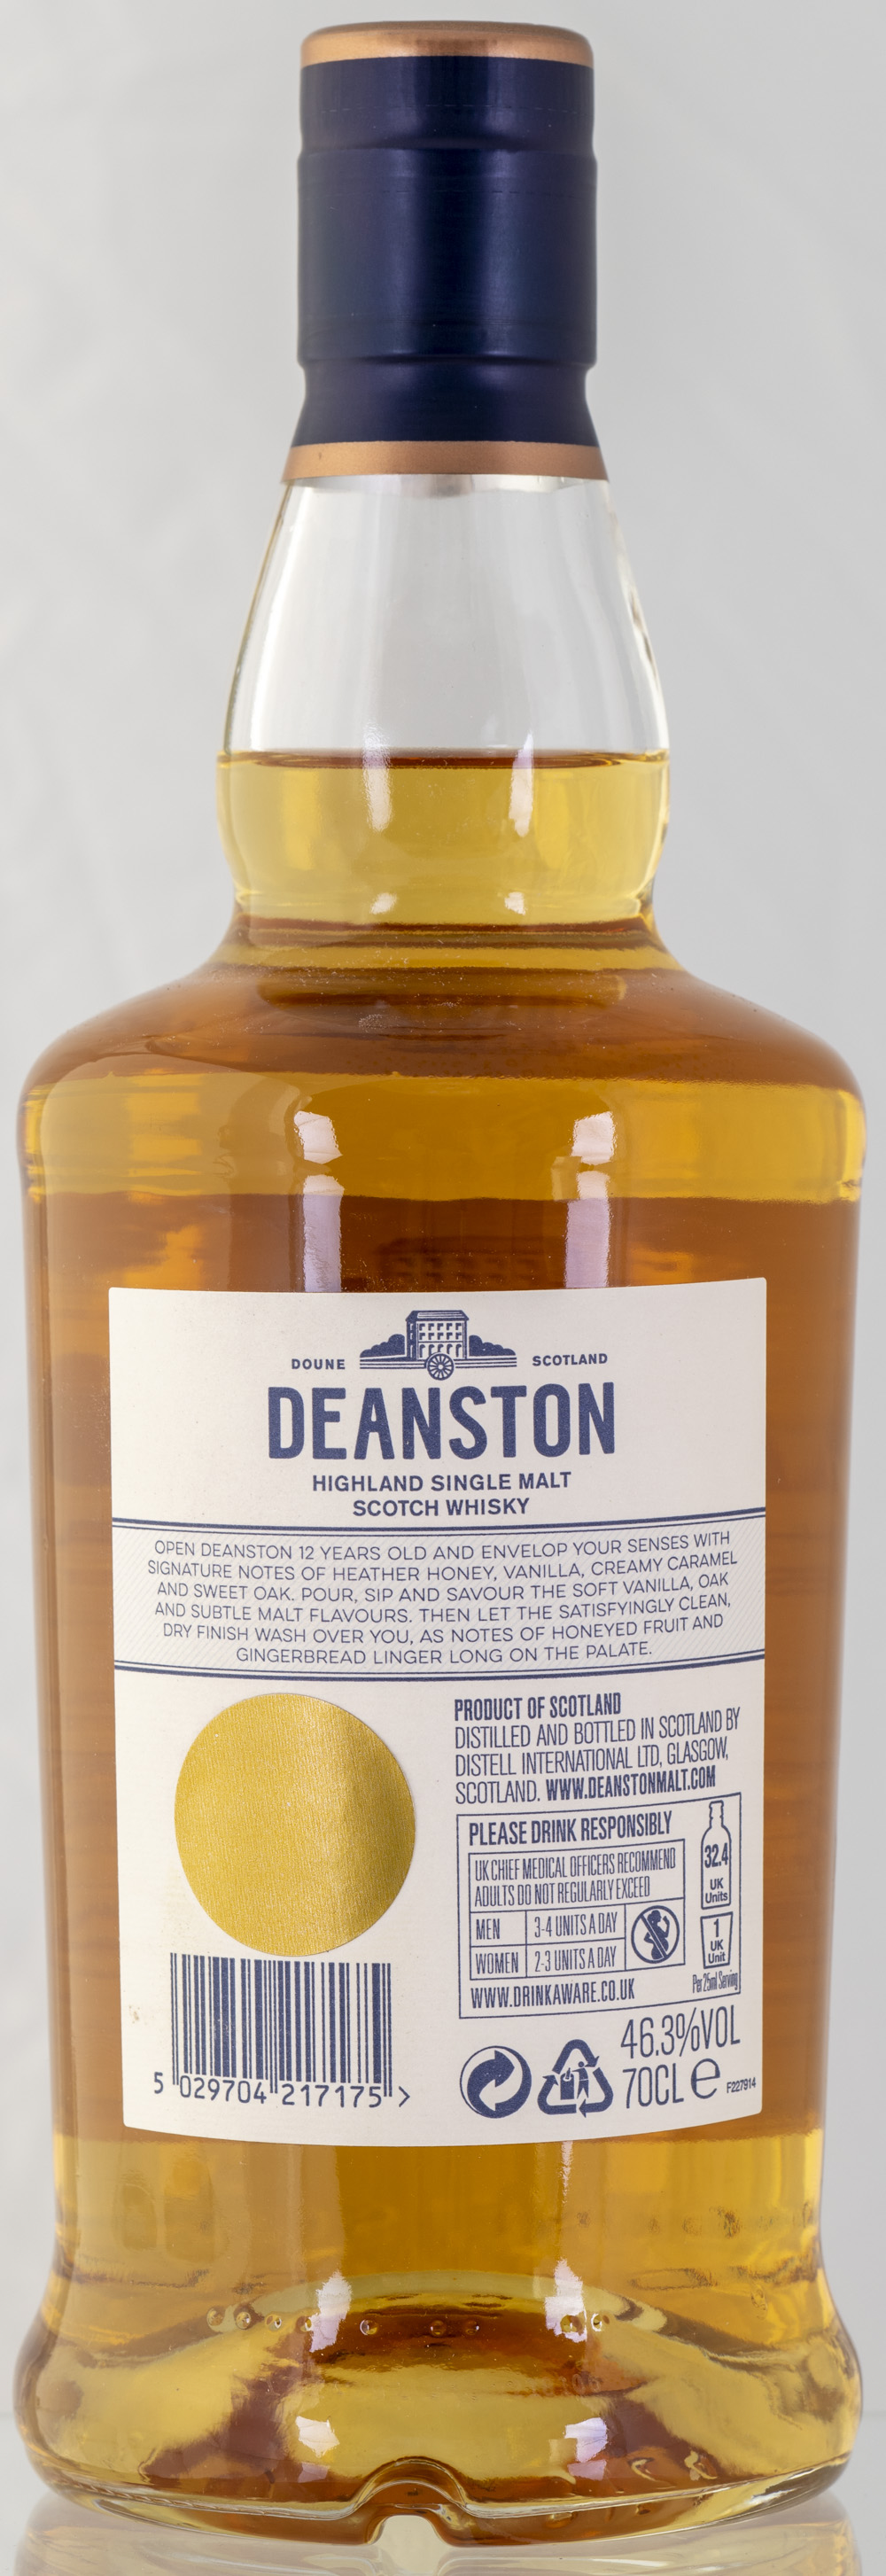 Billede: PHC_2265 - Deanston 12 - bottle back.jpg